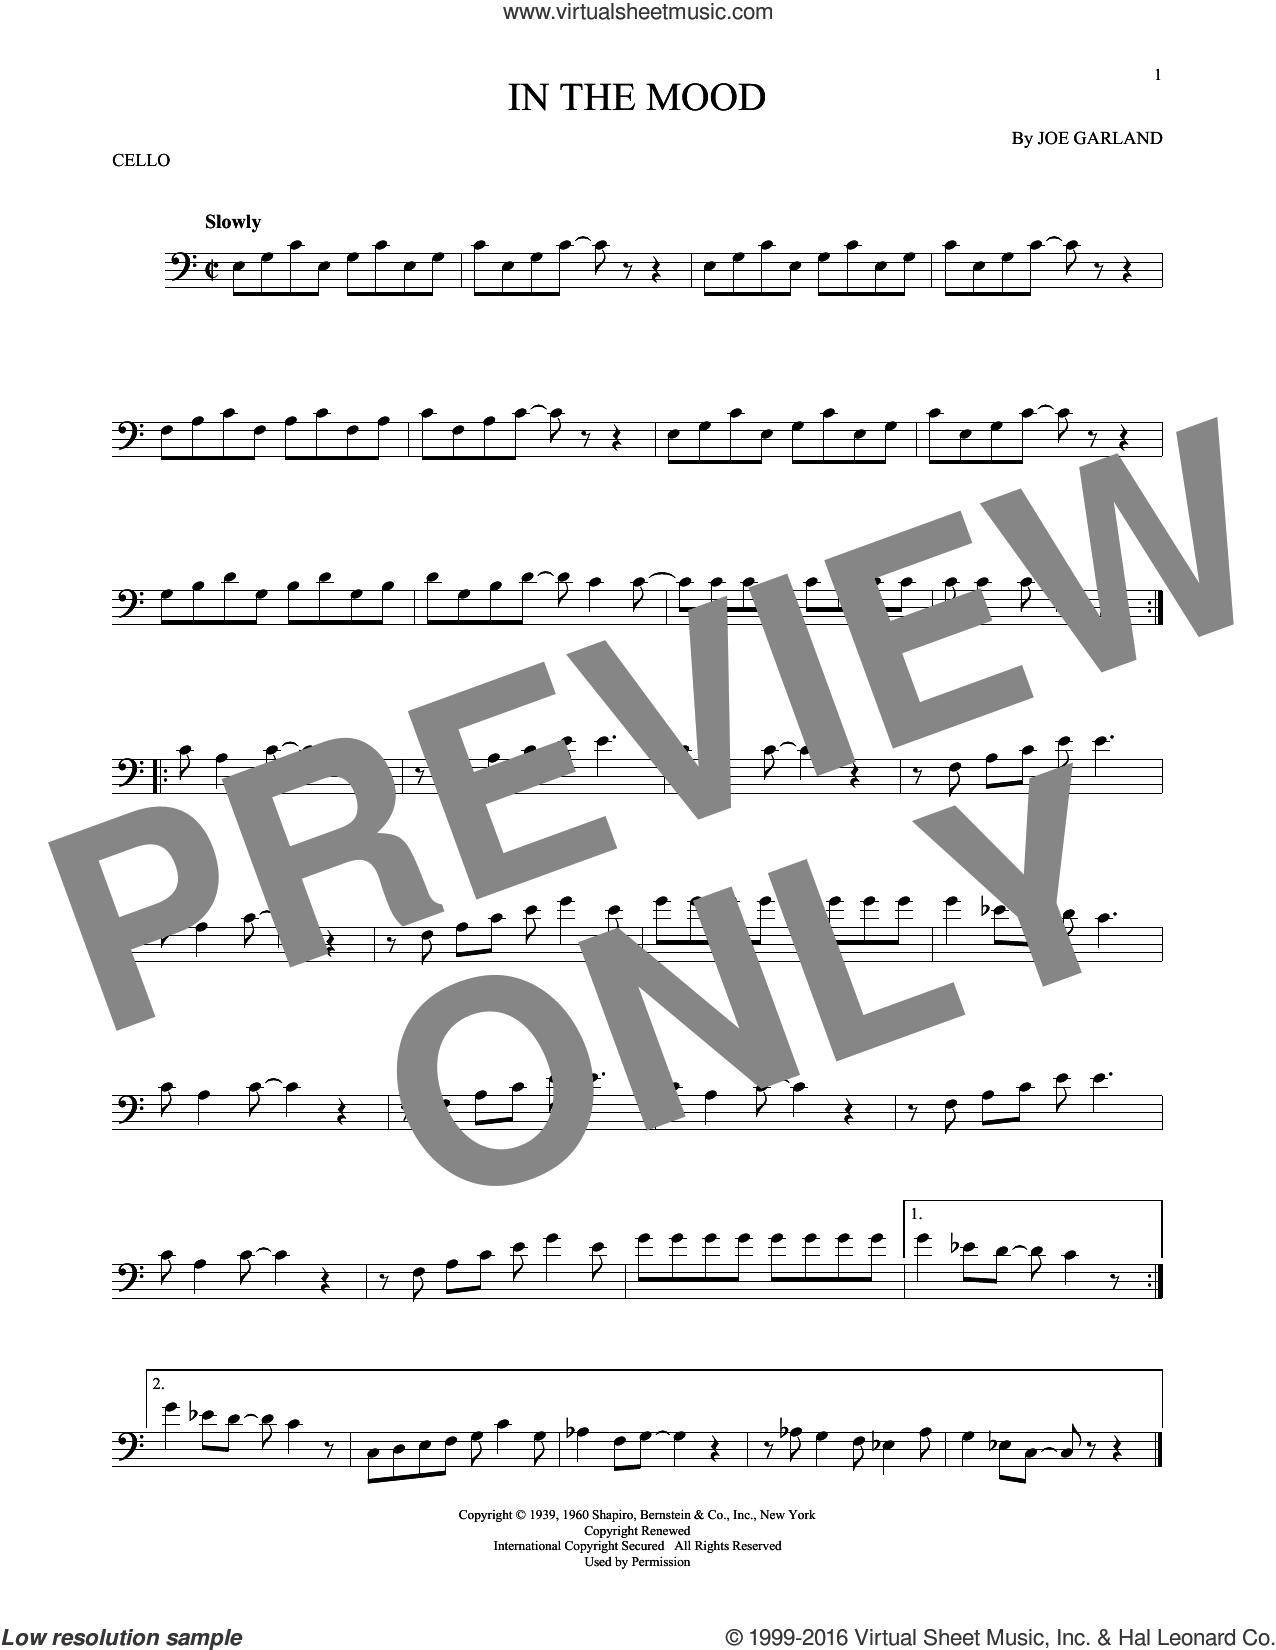 In The Mood sheet music for cello solo by Glenn Miller & His Orchestra and Joe Garland, intermediate skill level